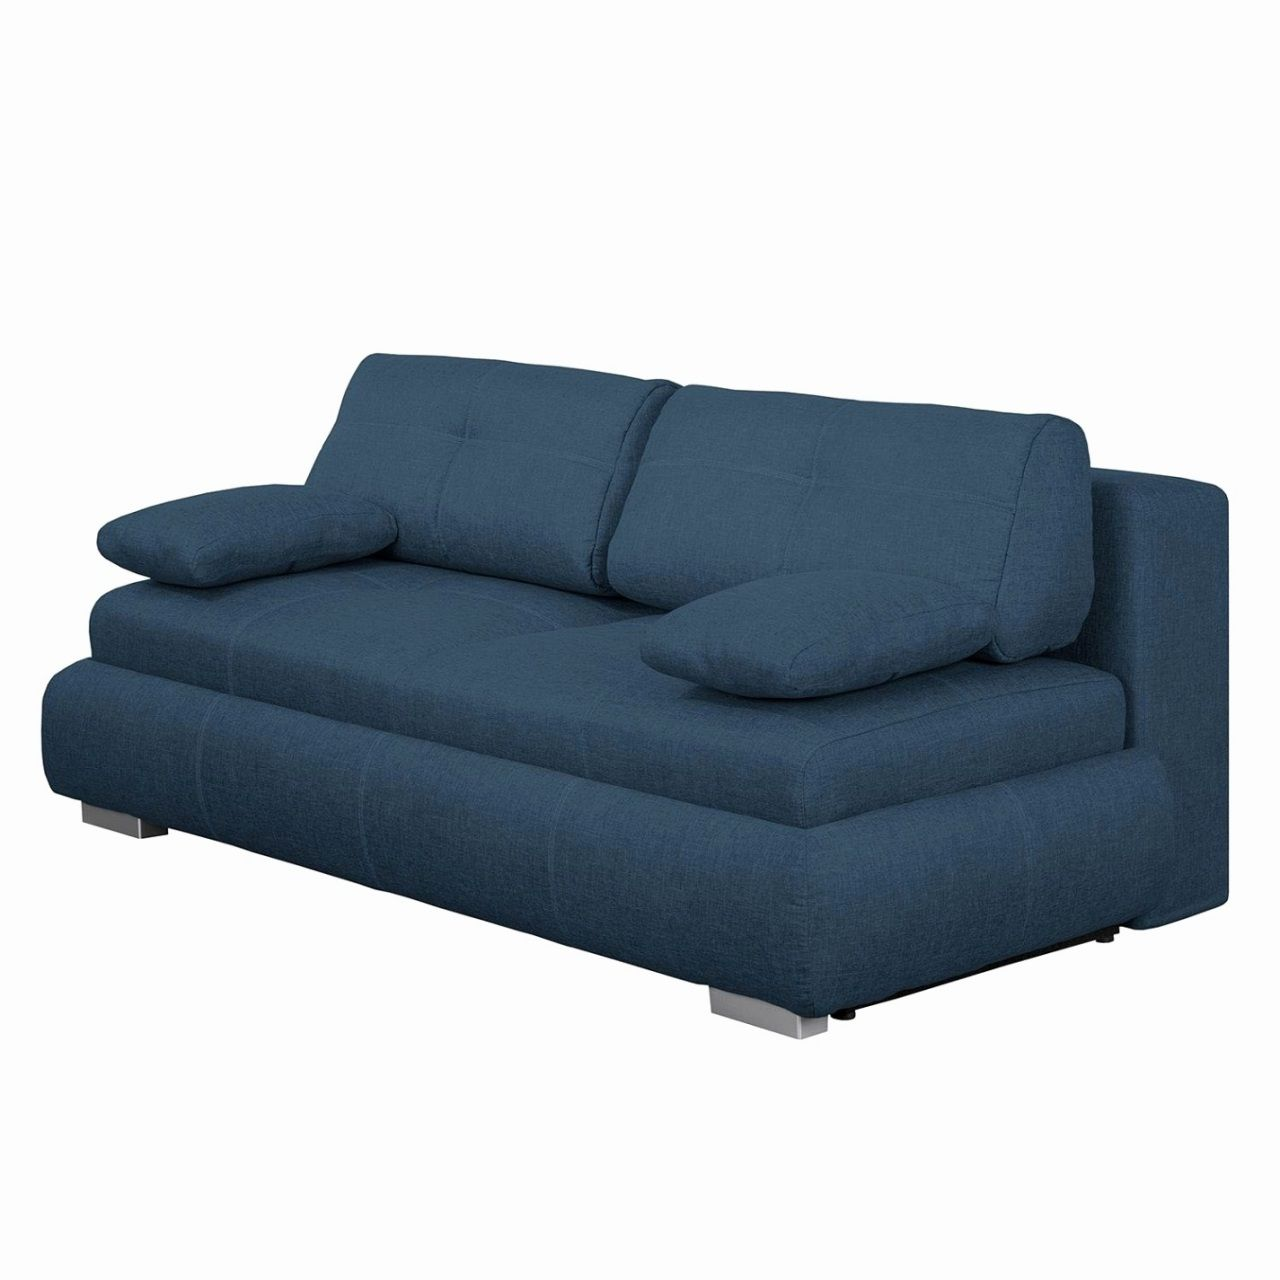 35 Awesome Ottoman Couch Sofa bed with storage, Ikea